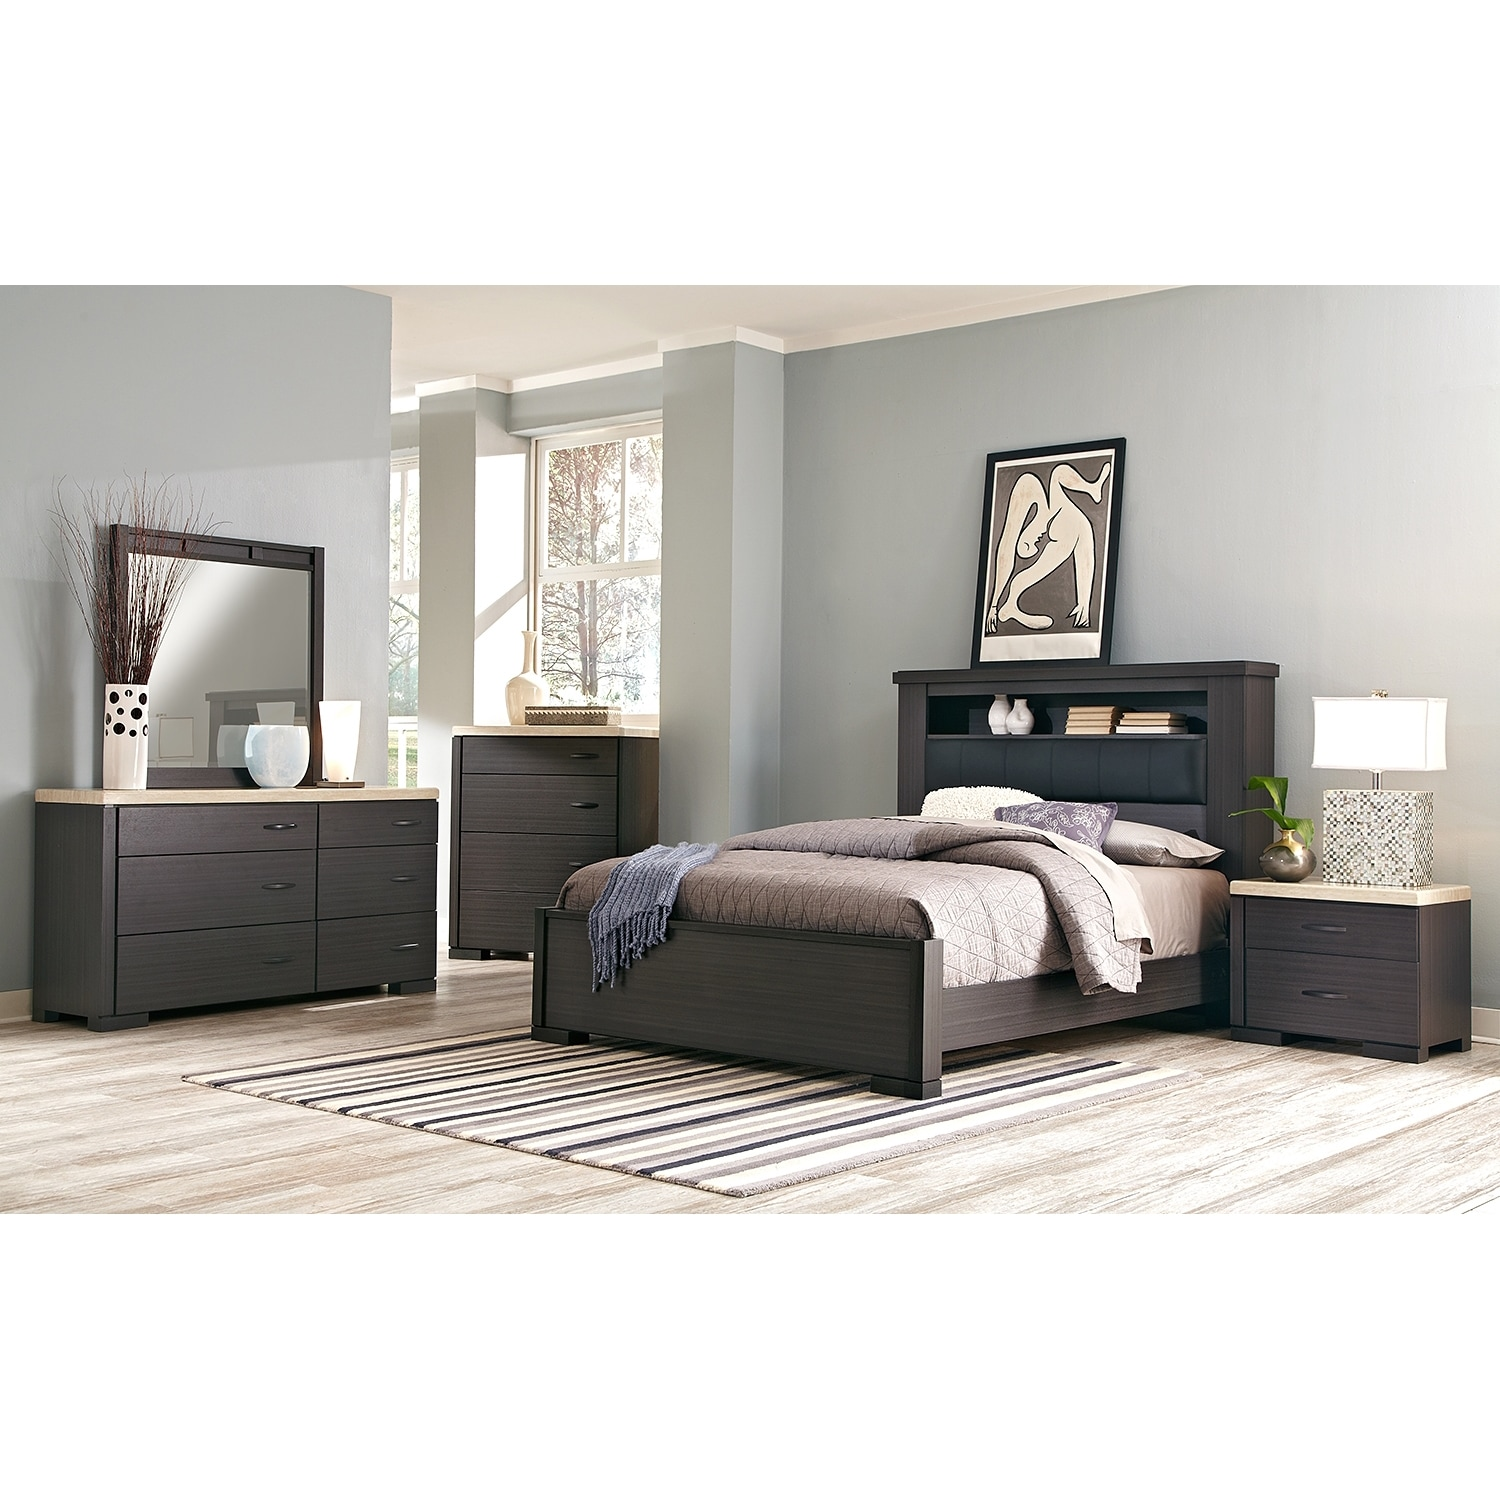 Camino 7 piece queen bedroom set charcoal and ivory for Bedroom furniture sets queen